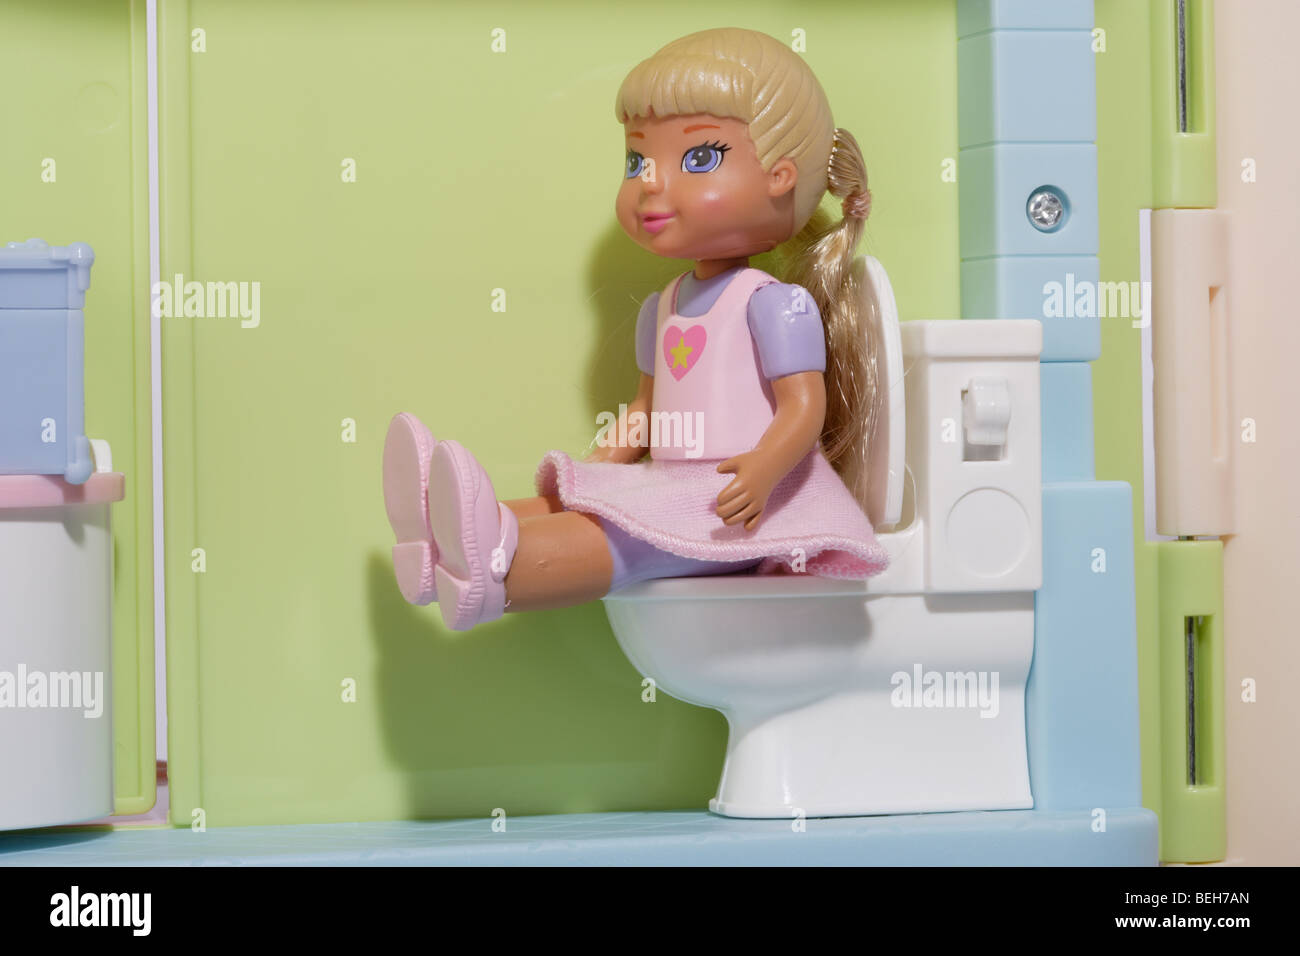 Girl child doll in the bathroom - Stock Image